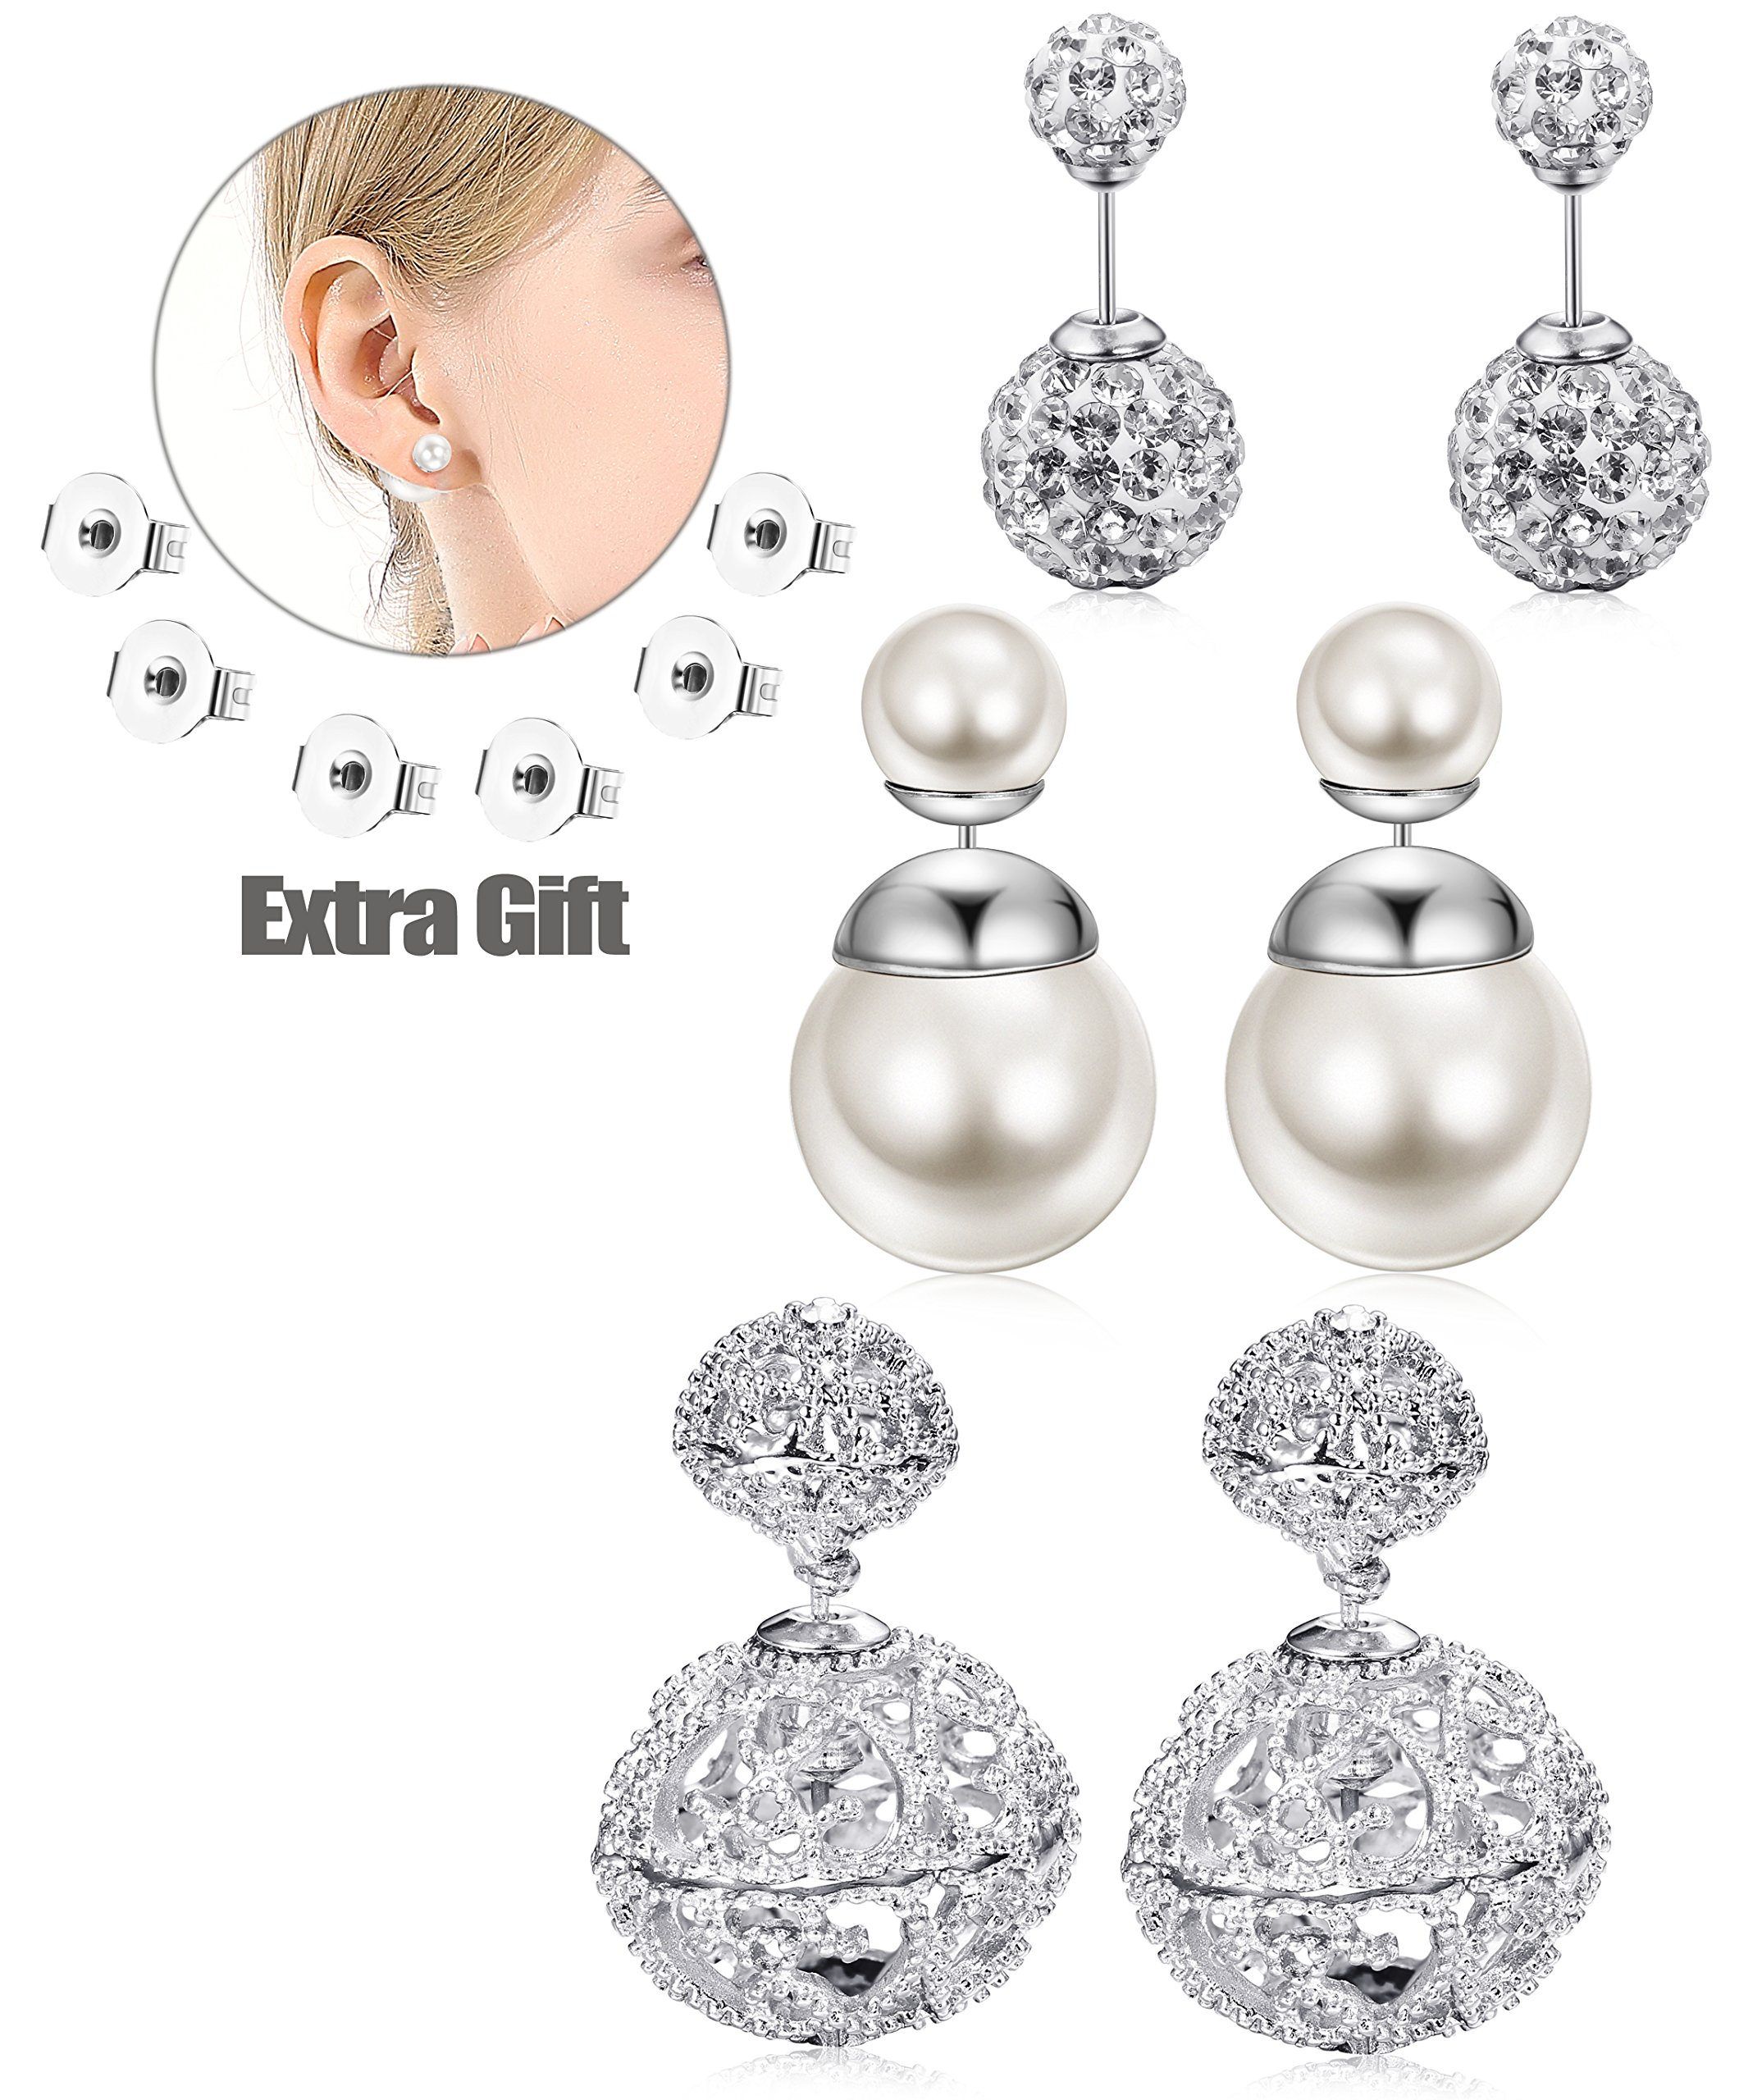 JOERICA 3 Pairs Vintage Hollow Out Womens Double Side Round Ball Stud Earrings Silver-tone